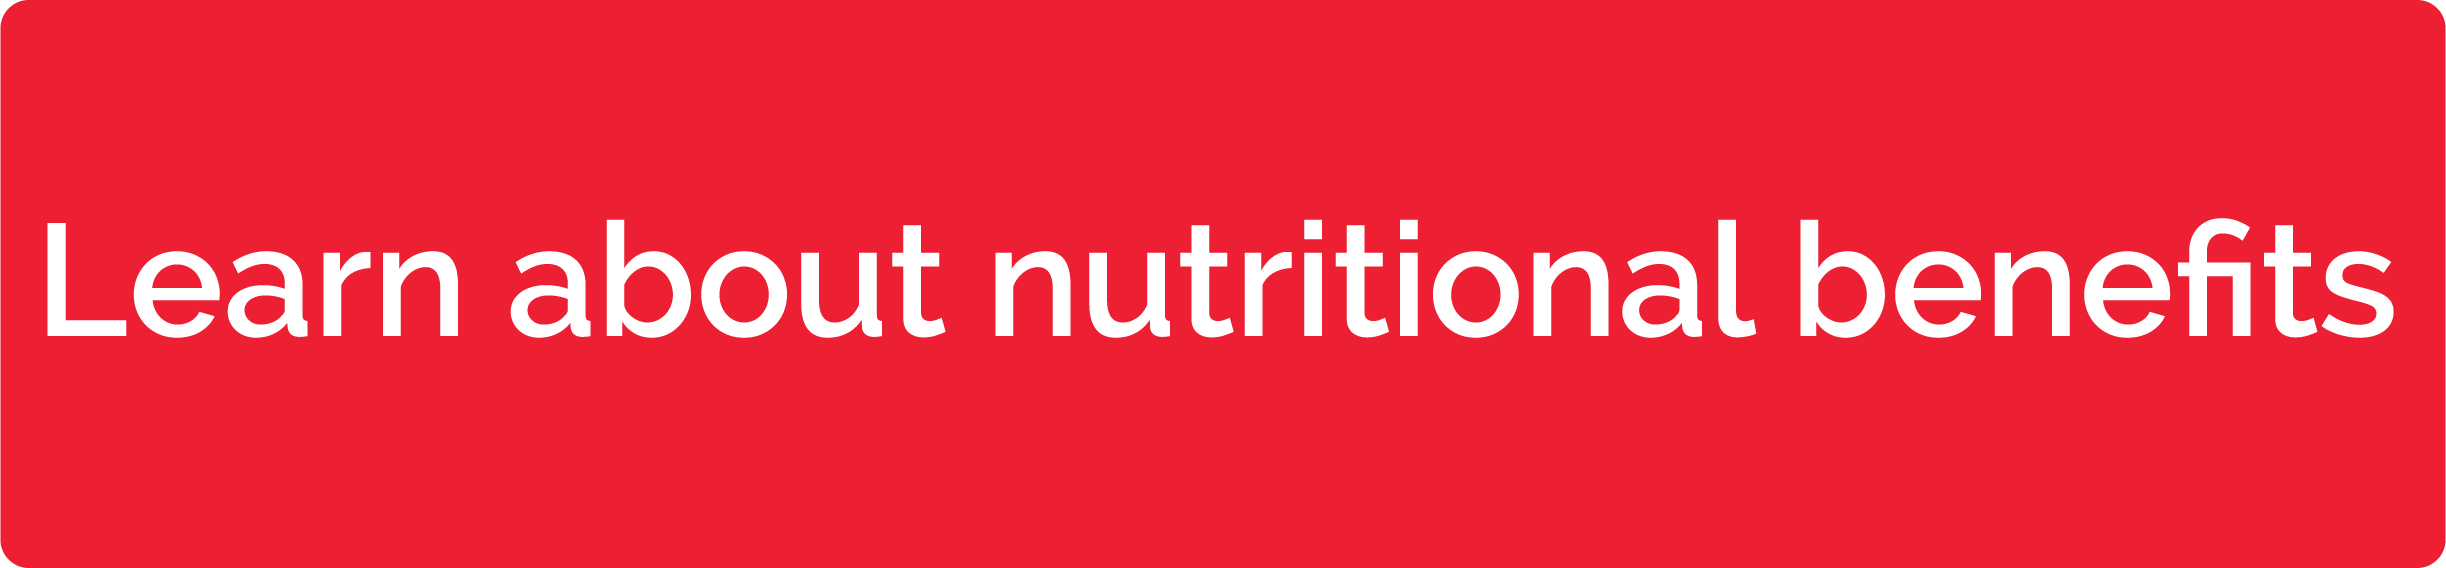 Learn about nutritional benefits